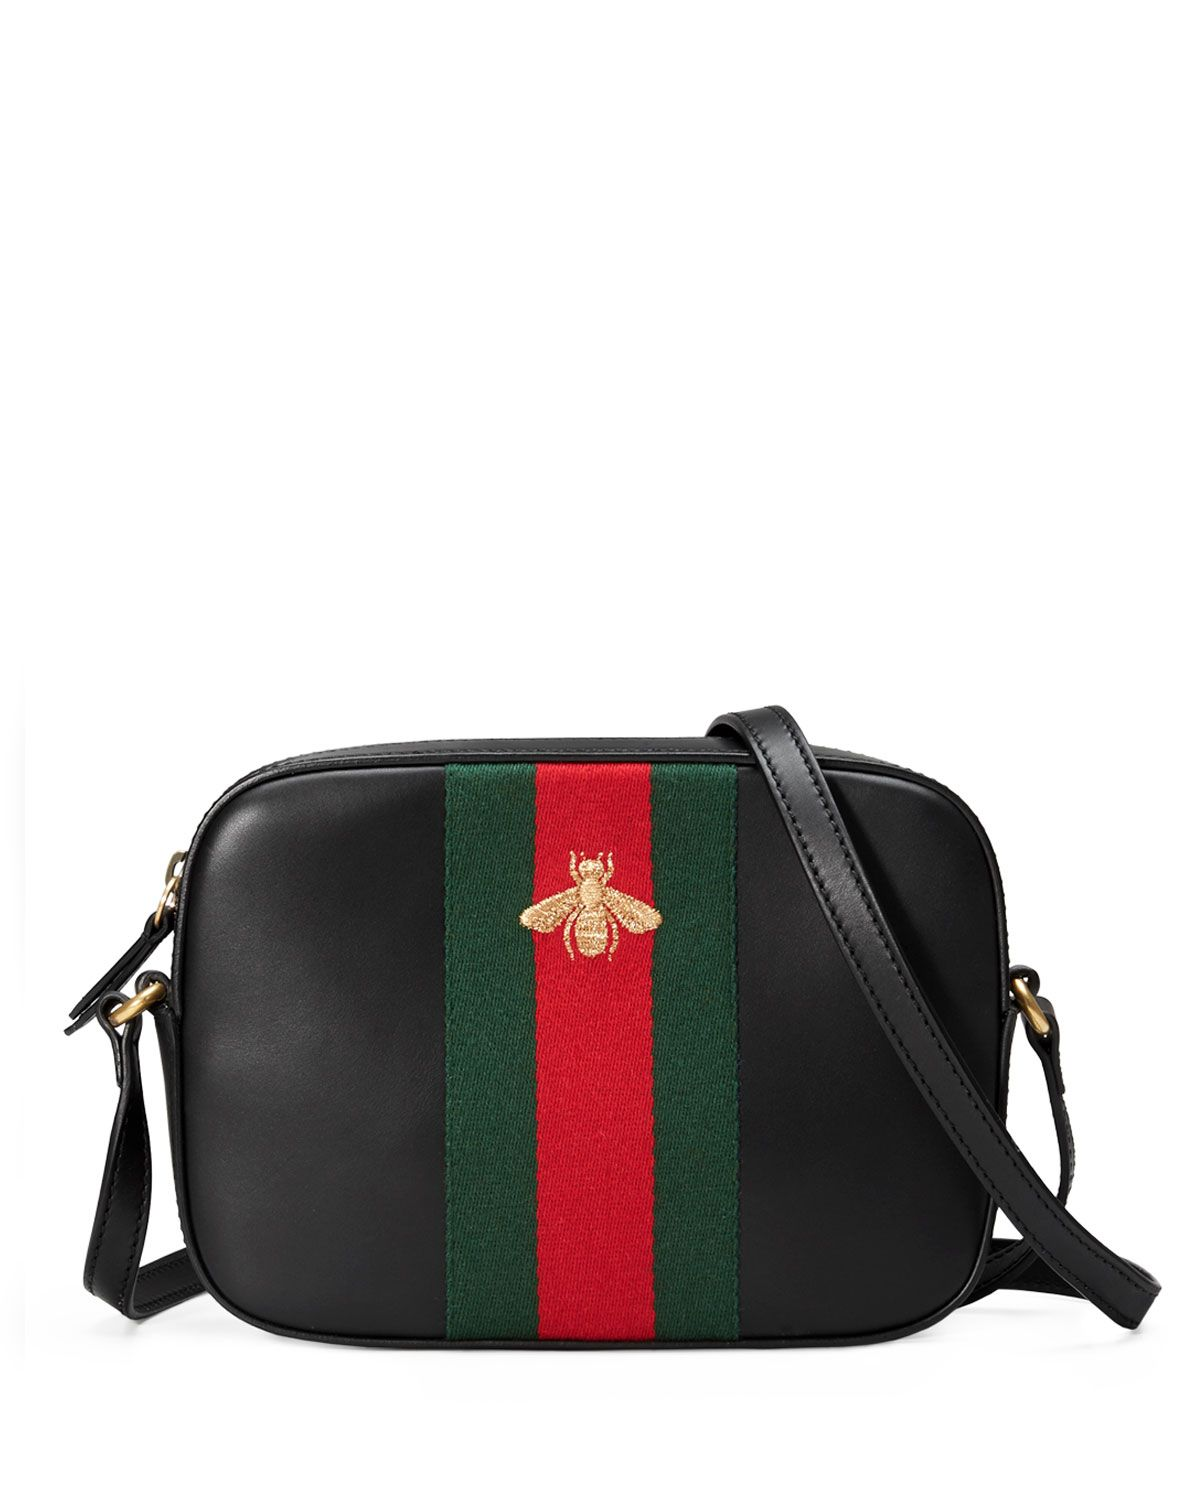 660f2c1bc Gucci black leather shoulder bag. Embroidered gold bee on our signature  wool web. Hand-painted edges. Adjustable shoulder strap with 20